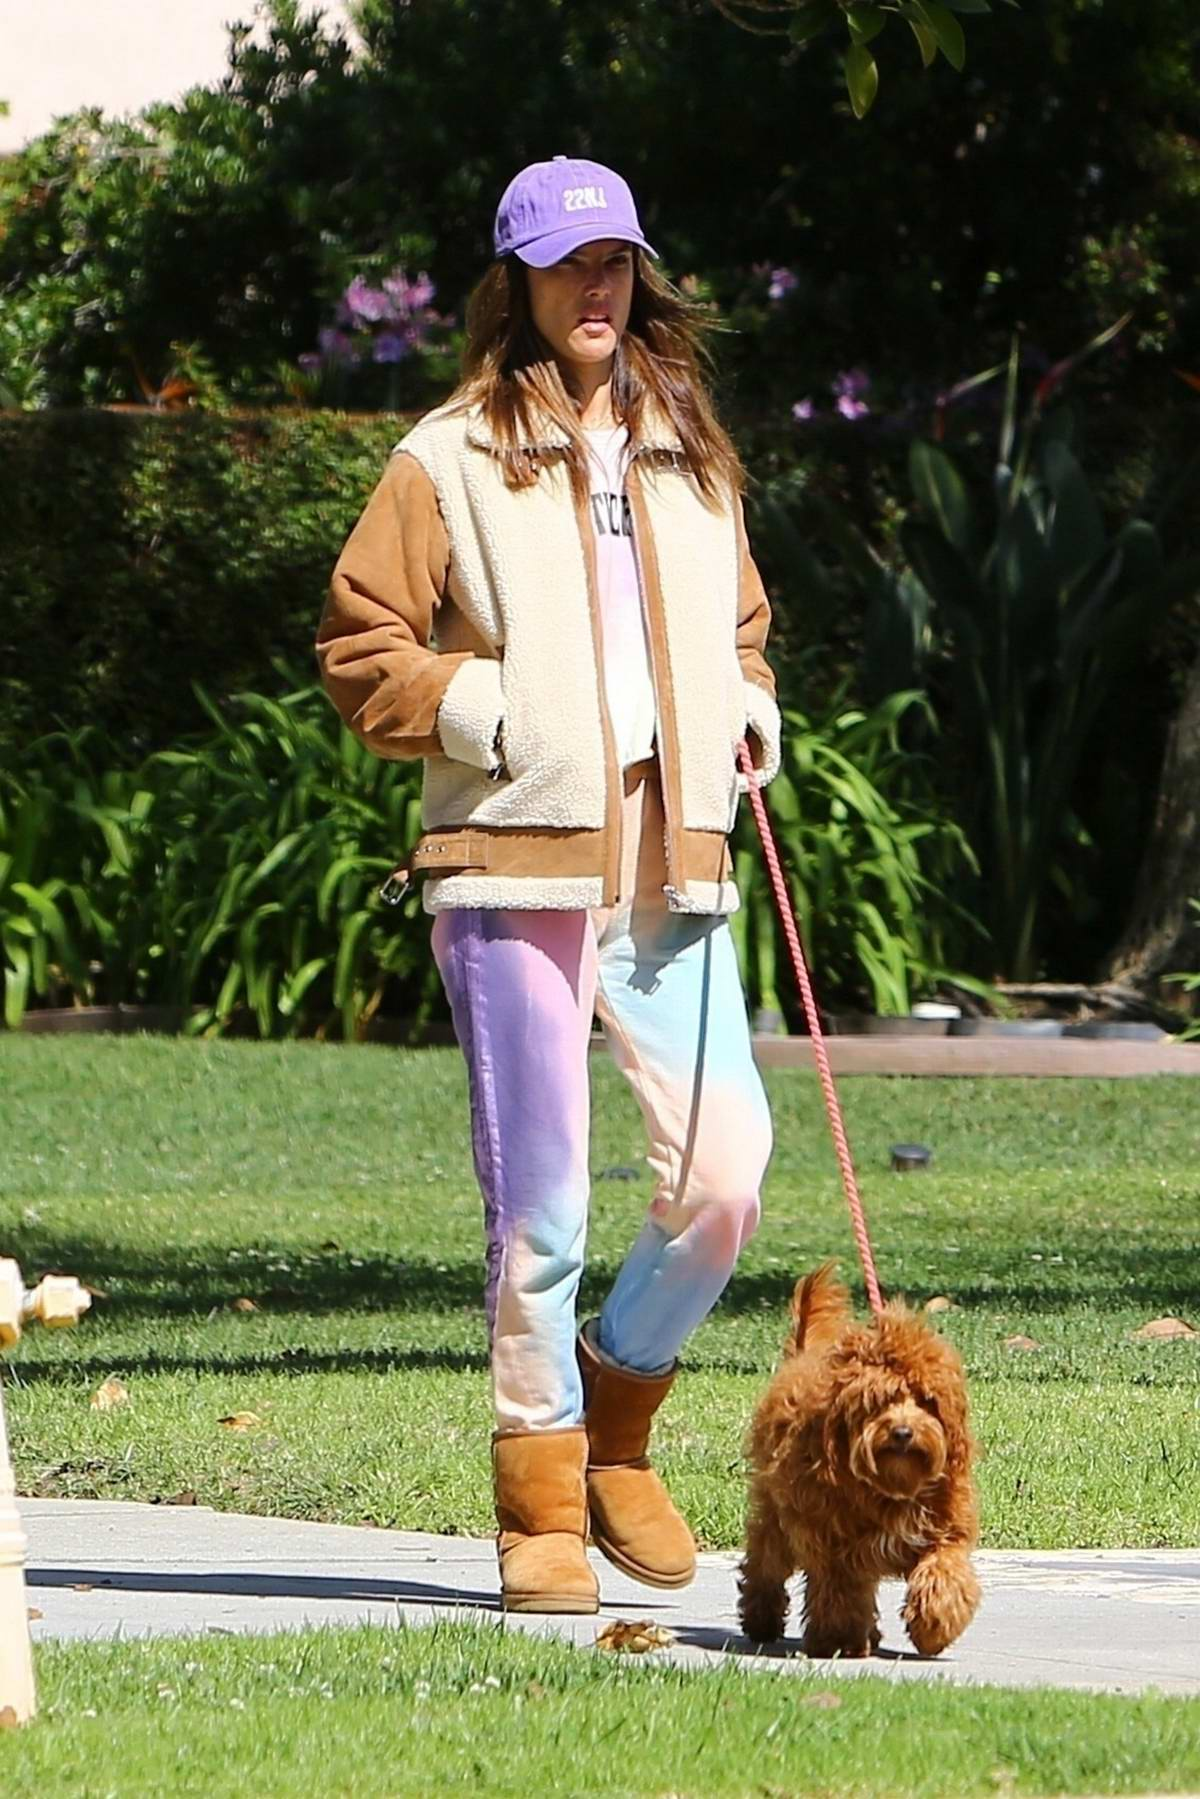 Alessandra Ambrosio looks comfy in her tie-dye sweatsuit while out for stroll with Nicolo Oddi in Santa Monica, California